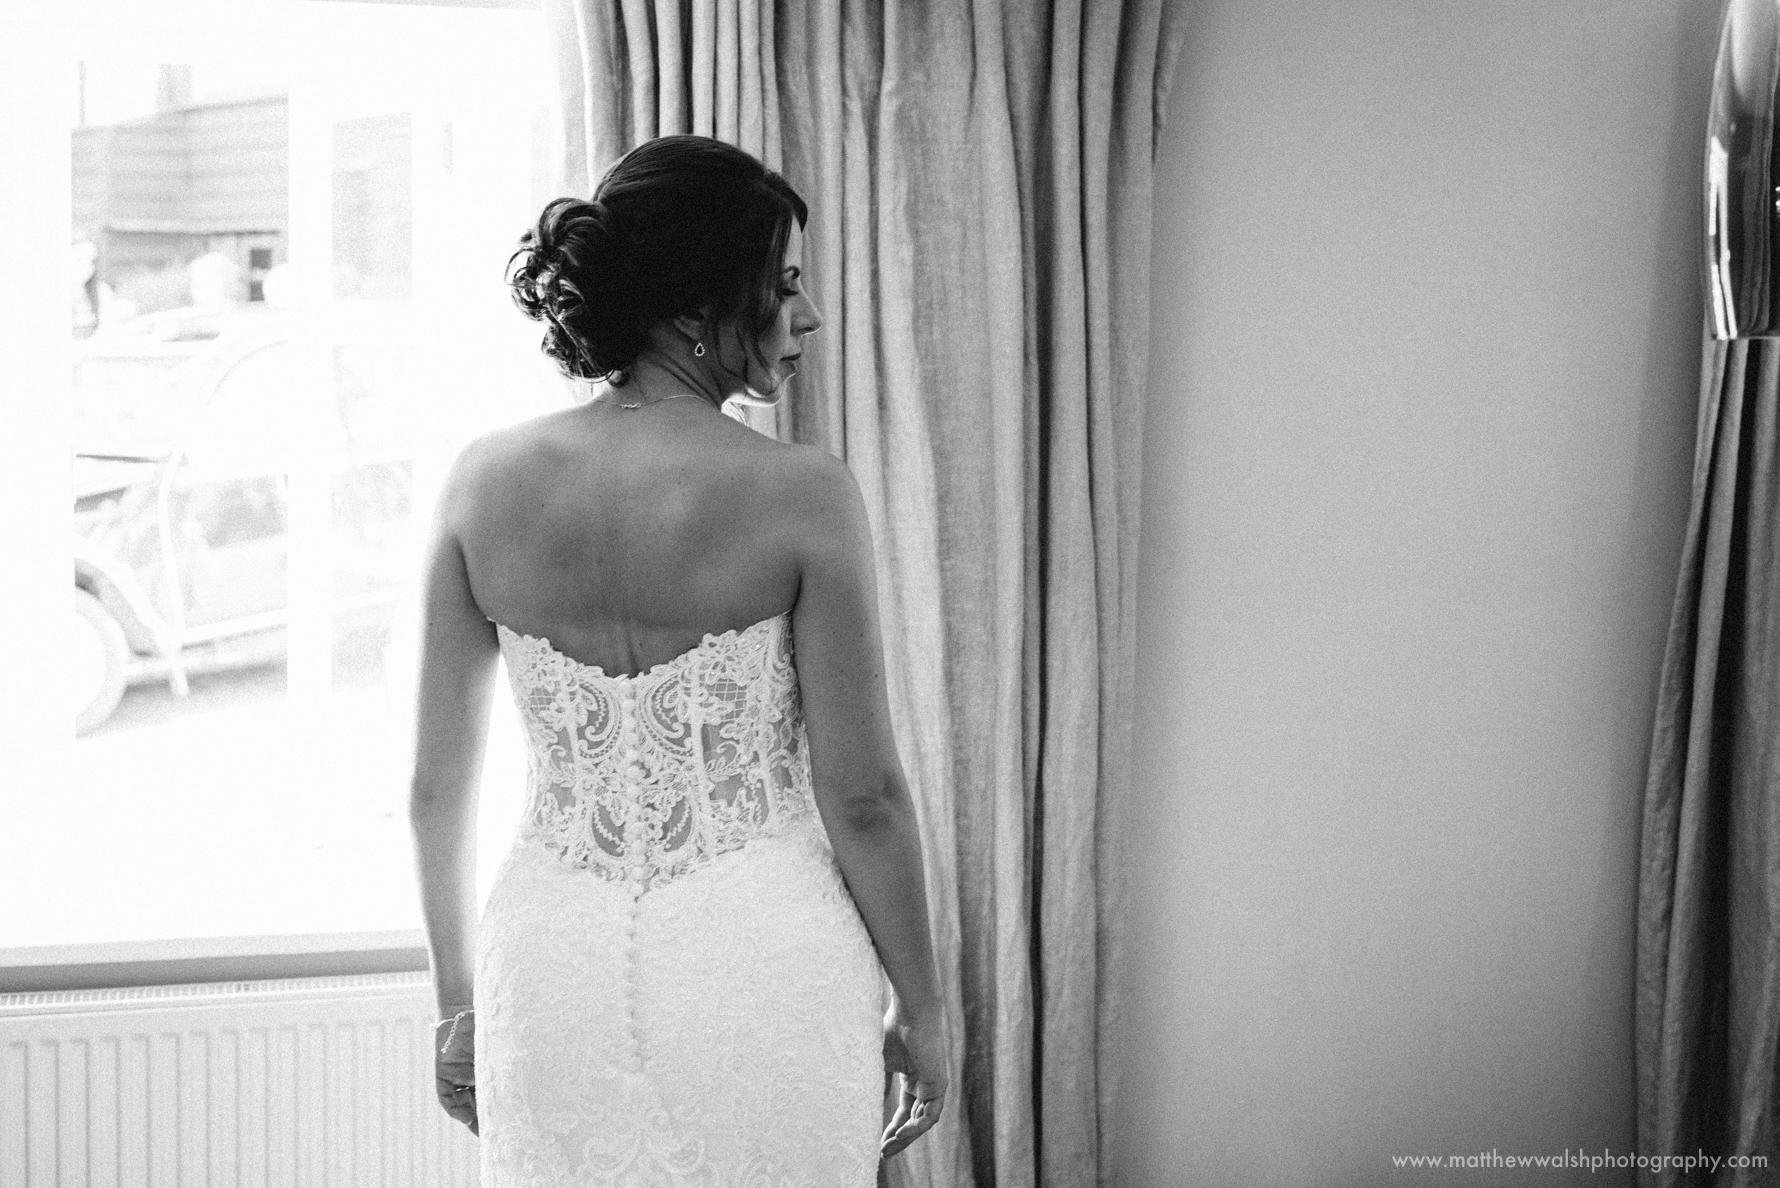 The bride looking beautiful and sophisticated all ready to go